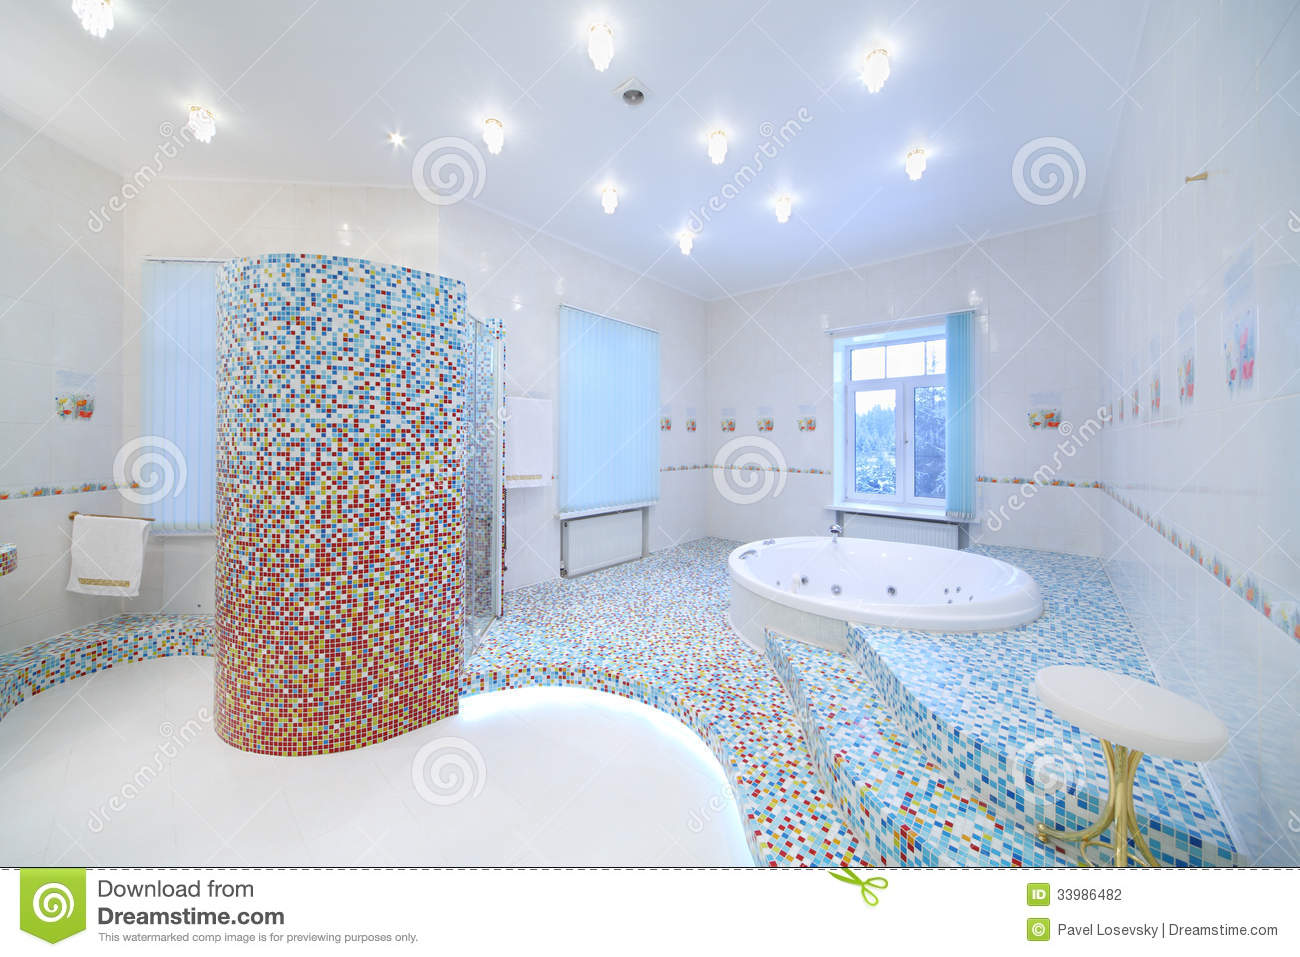 Light And Clean Bathroom With Jacuzzi And Shower Cabin Stock Photography Part 97